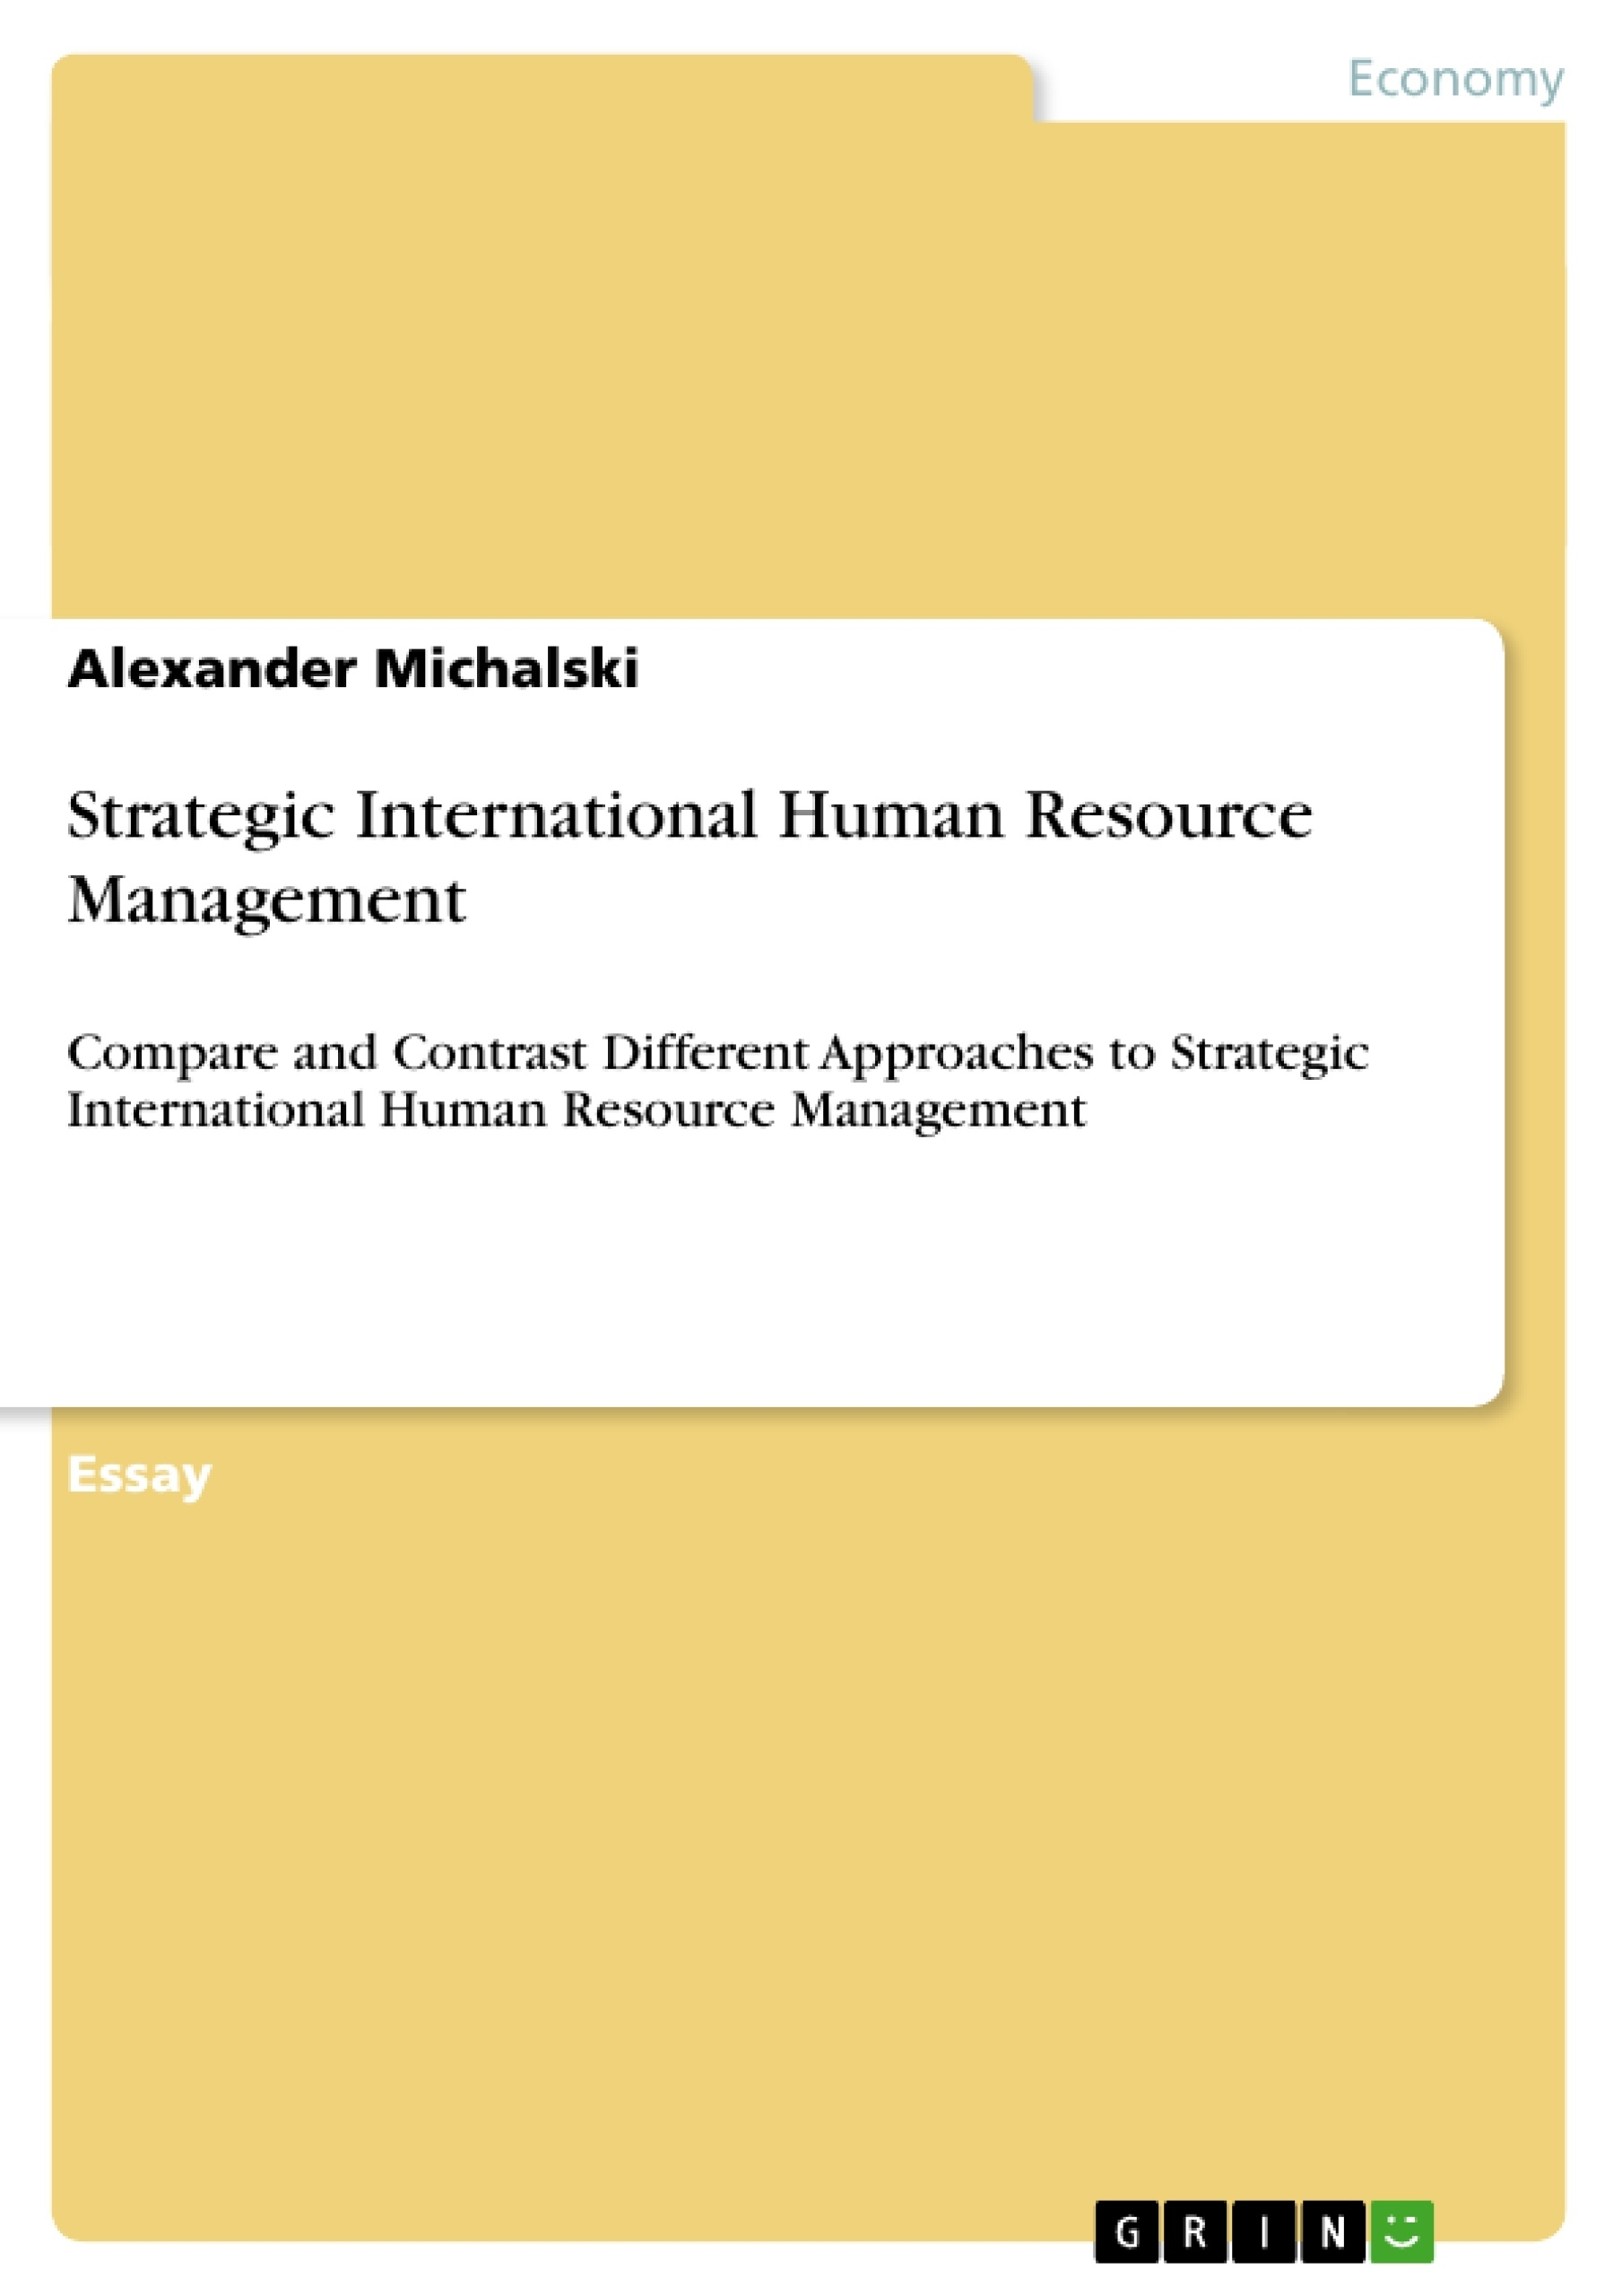 strategic international human resource management publish your  strategic international human resource management publish your master s thesis bachelor s thesis essay or term paper